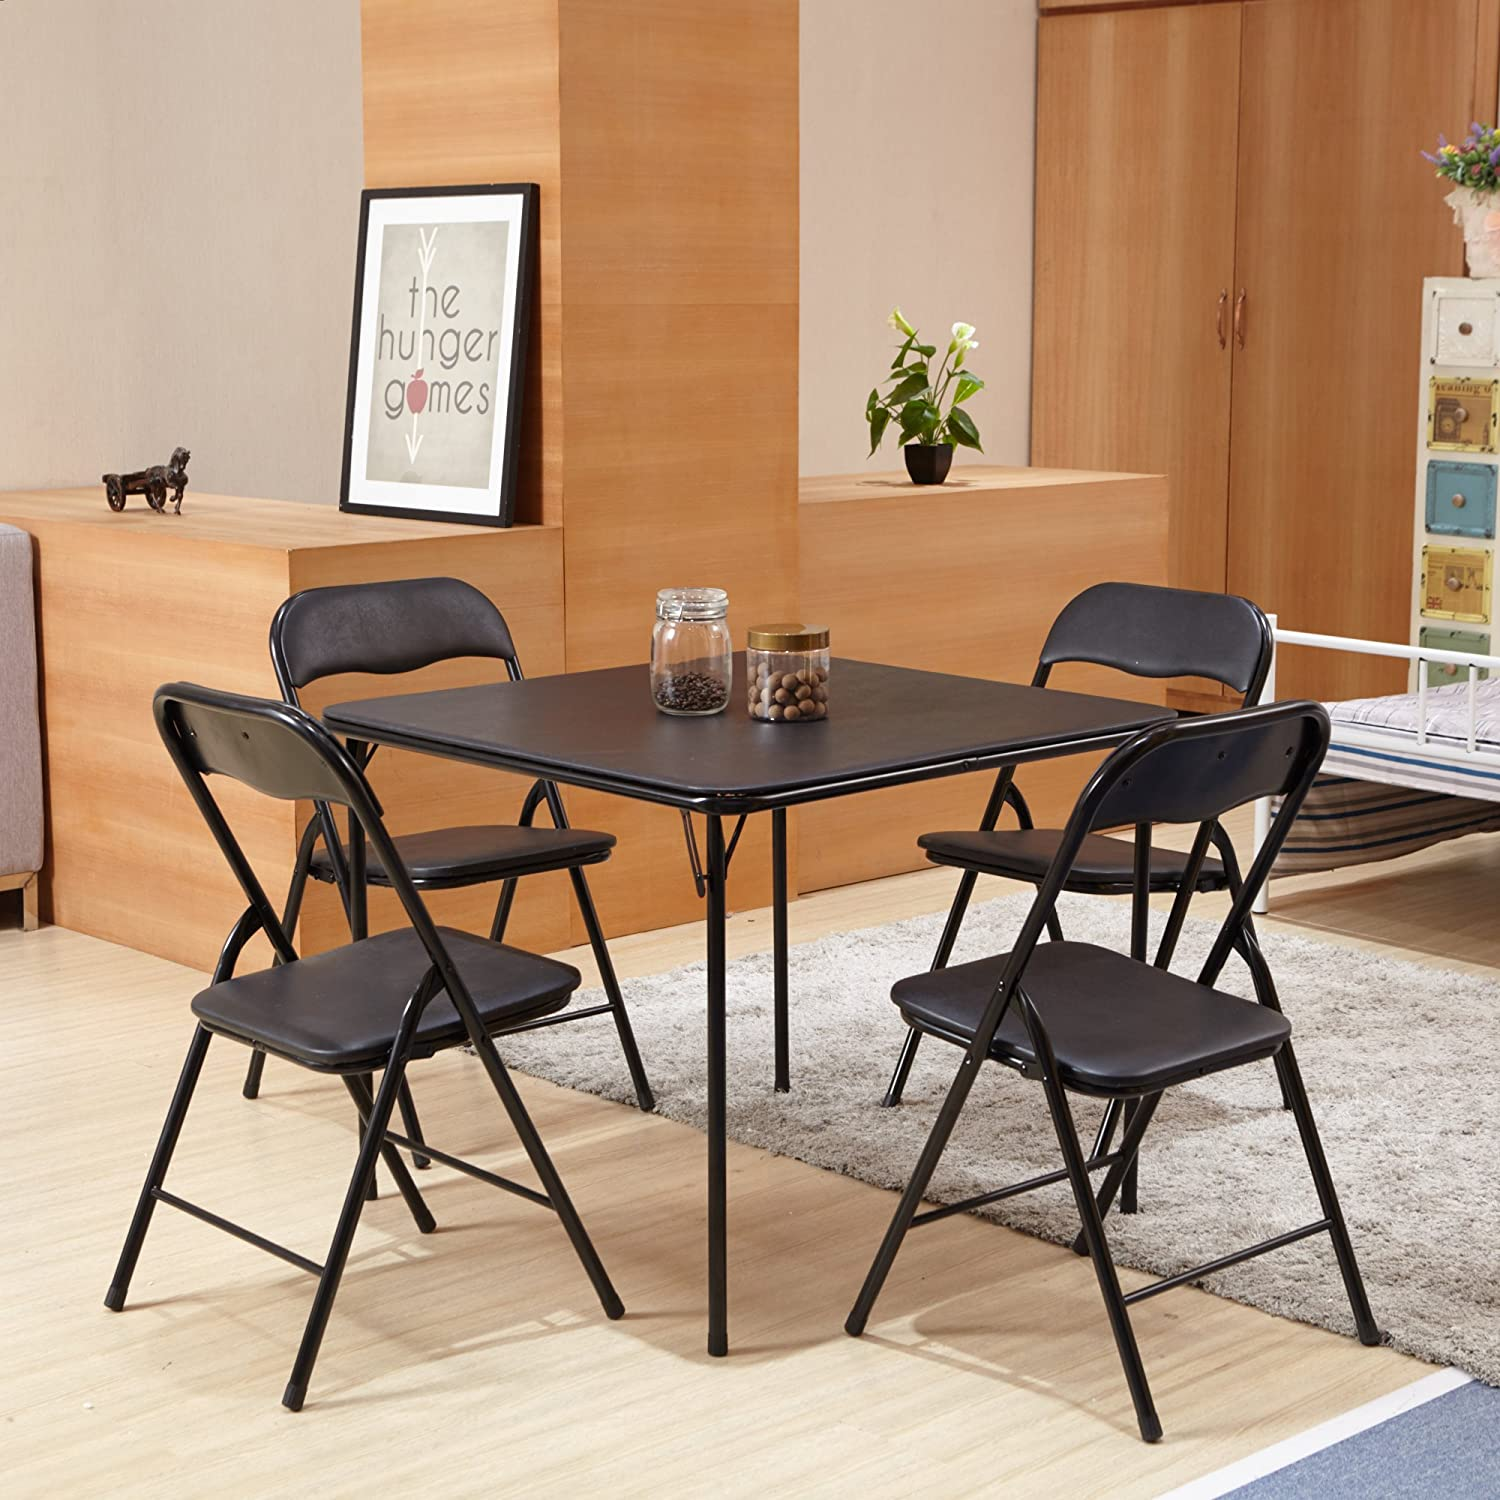 Homycasa Folding Square Set of 4 Dining Table & Chair Sets, Black#